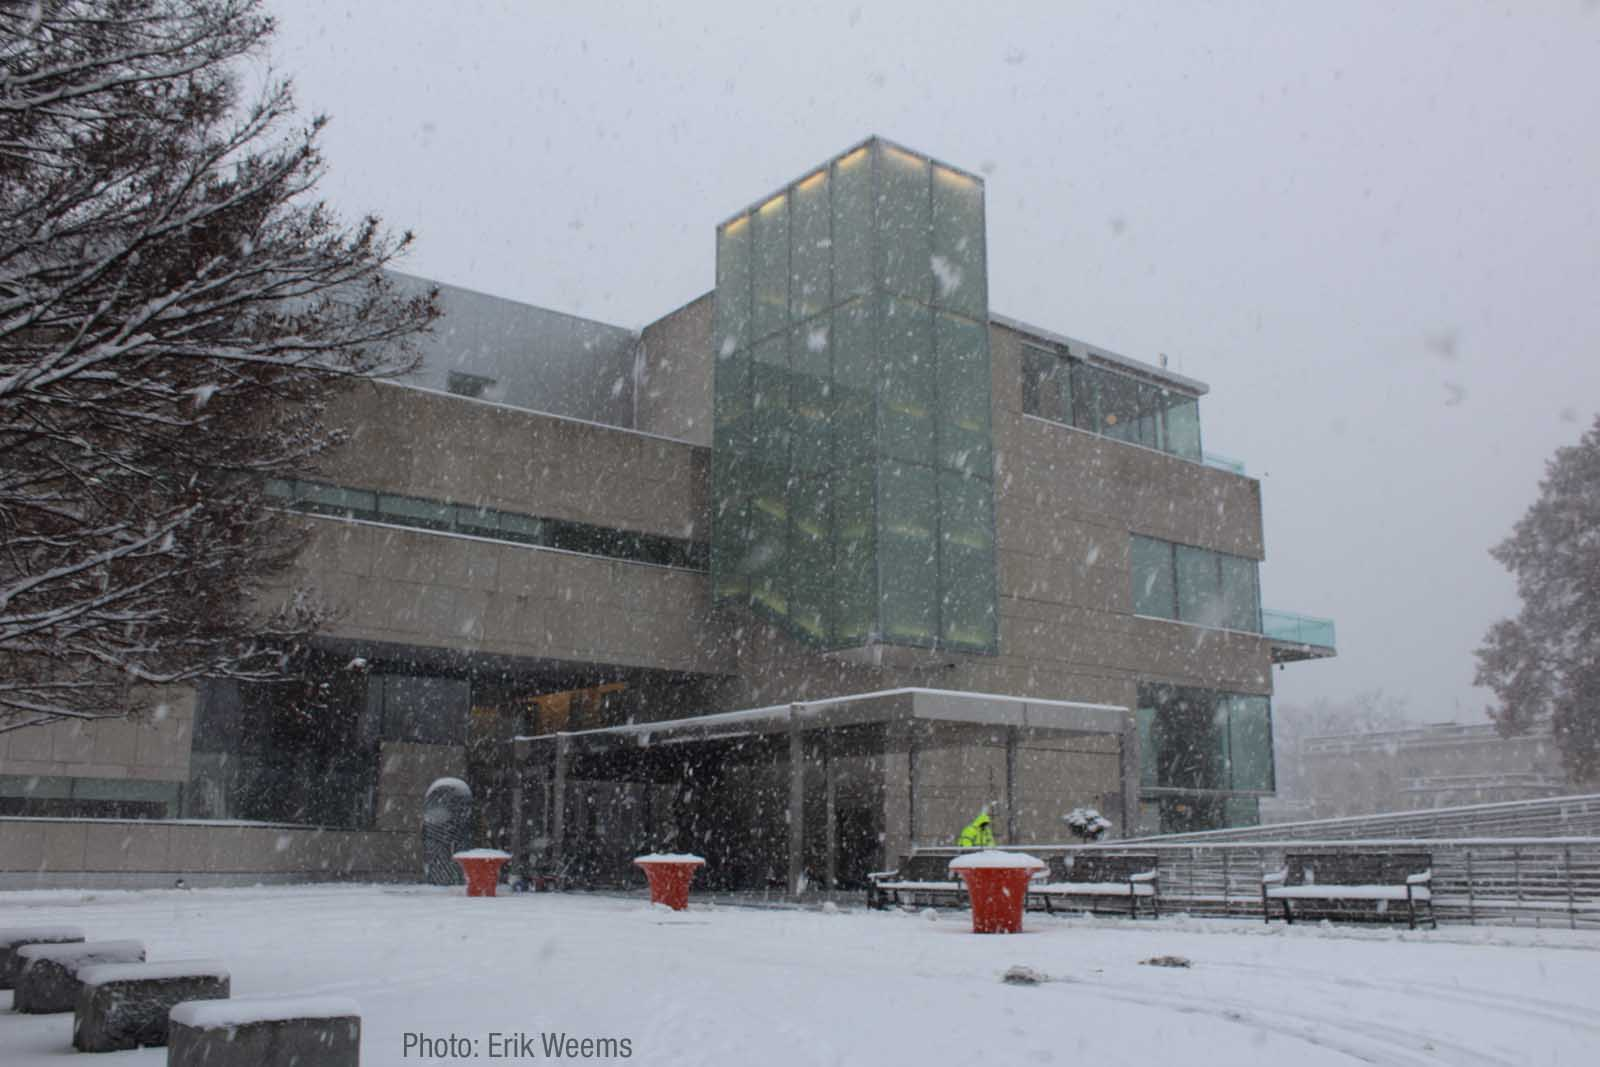 Enlarged - VMFA MUseum in the Snow